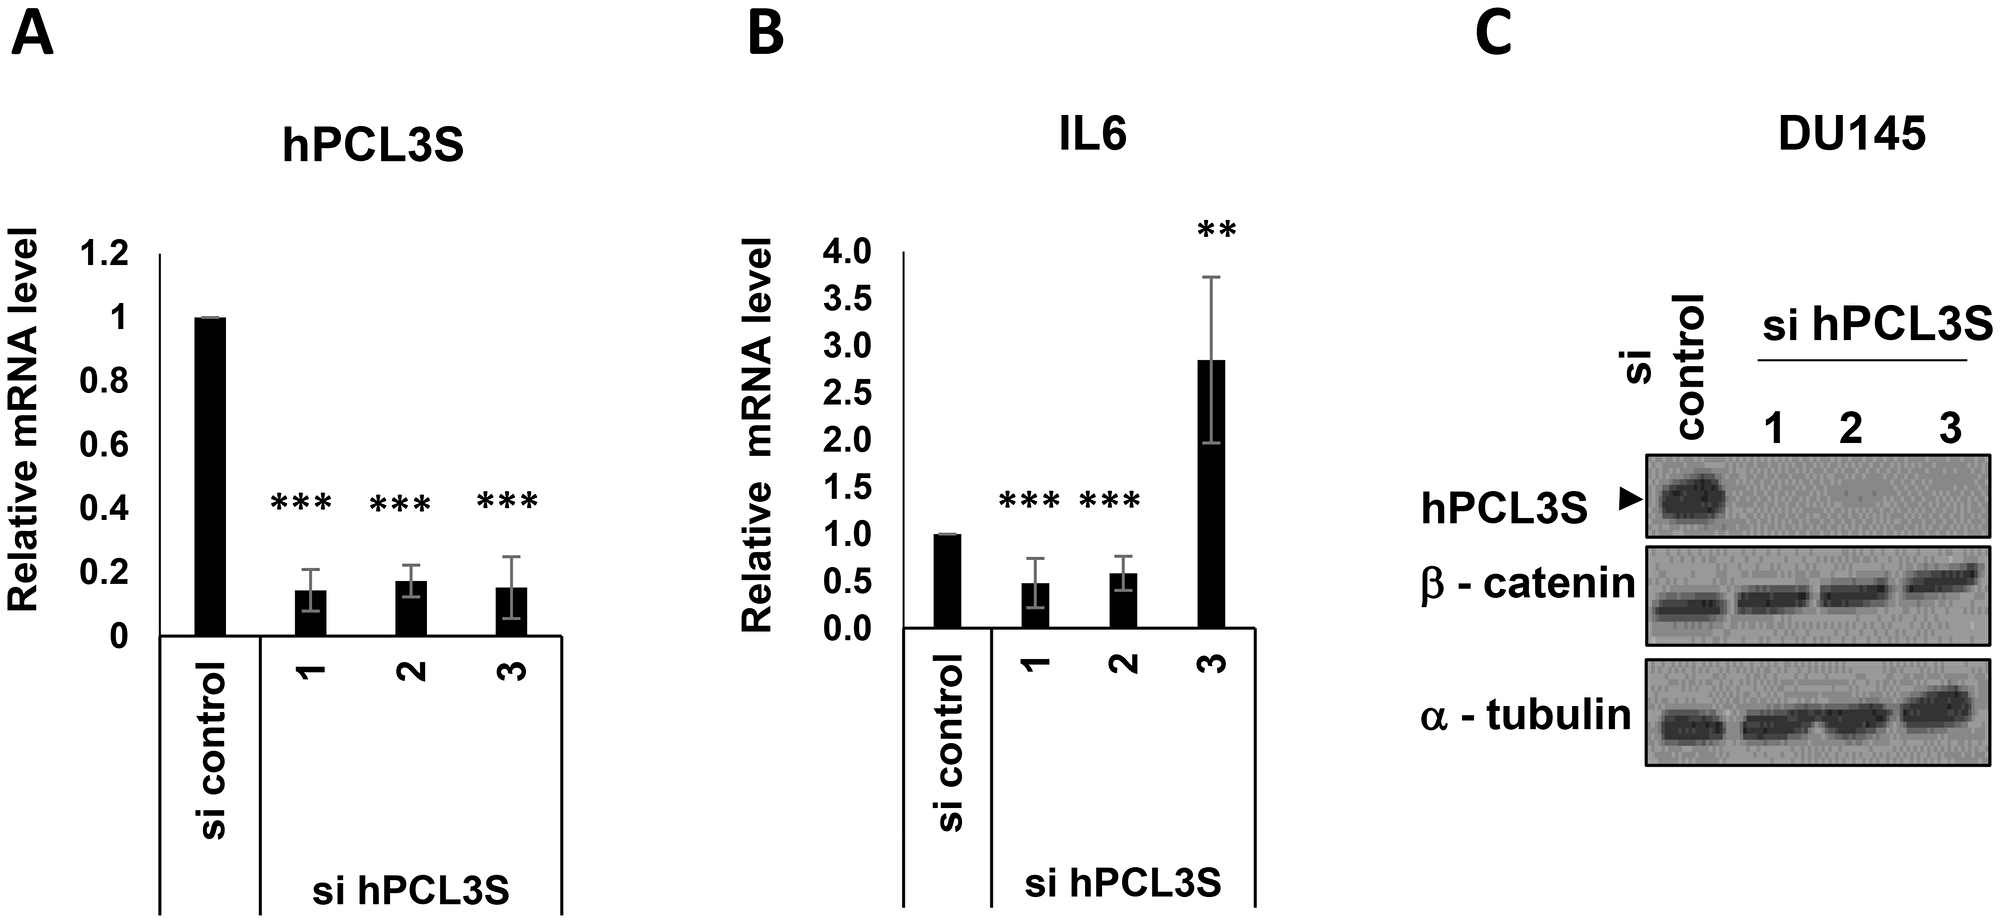 IL6 appeared as a hPCL3S target gene but independently of βcatenin stabilization in DU145 cells.